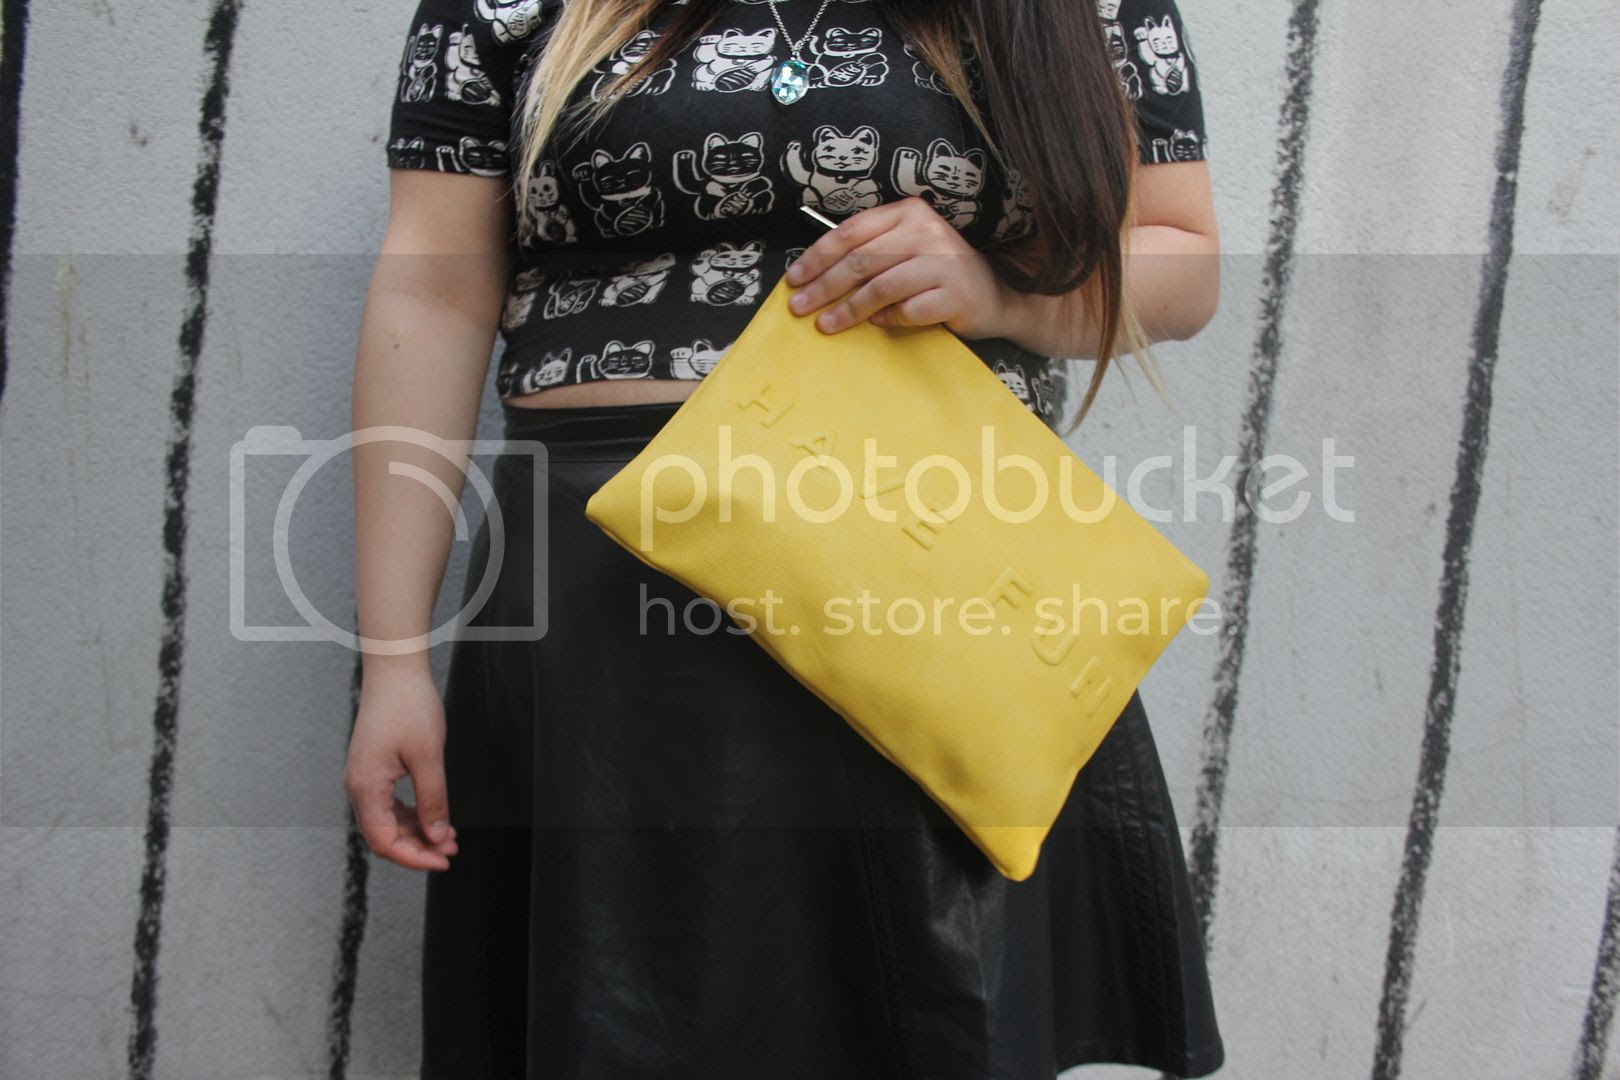 plus size fashion body positive toronto canada jessica ip clothes and shit lucky cat plus size blogger forever21 plus size leather skirt